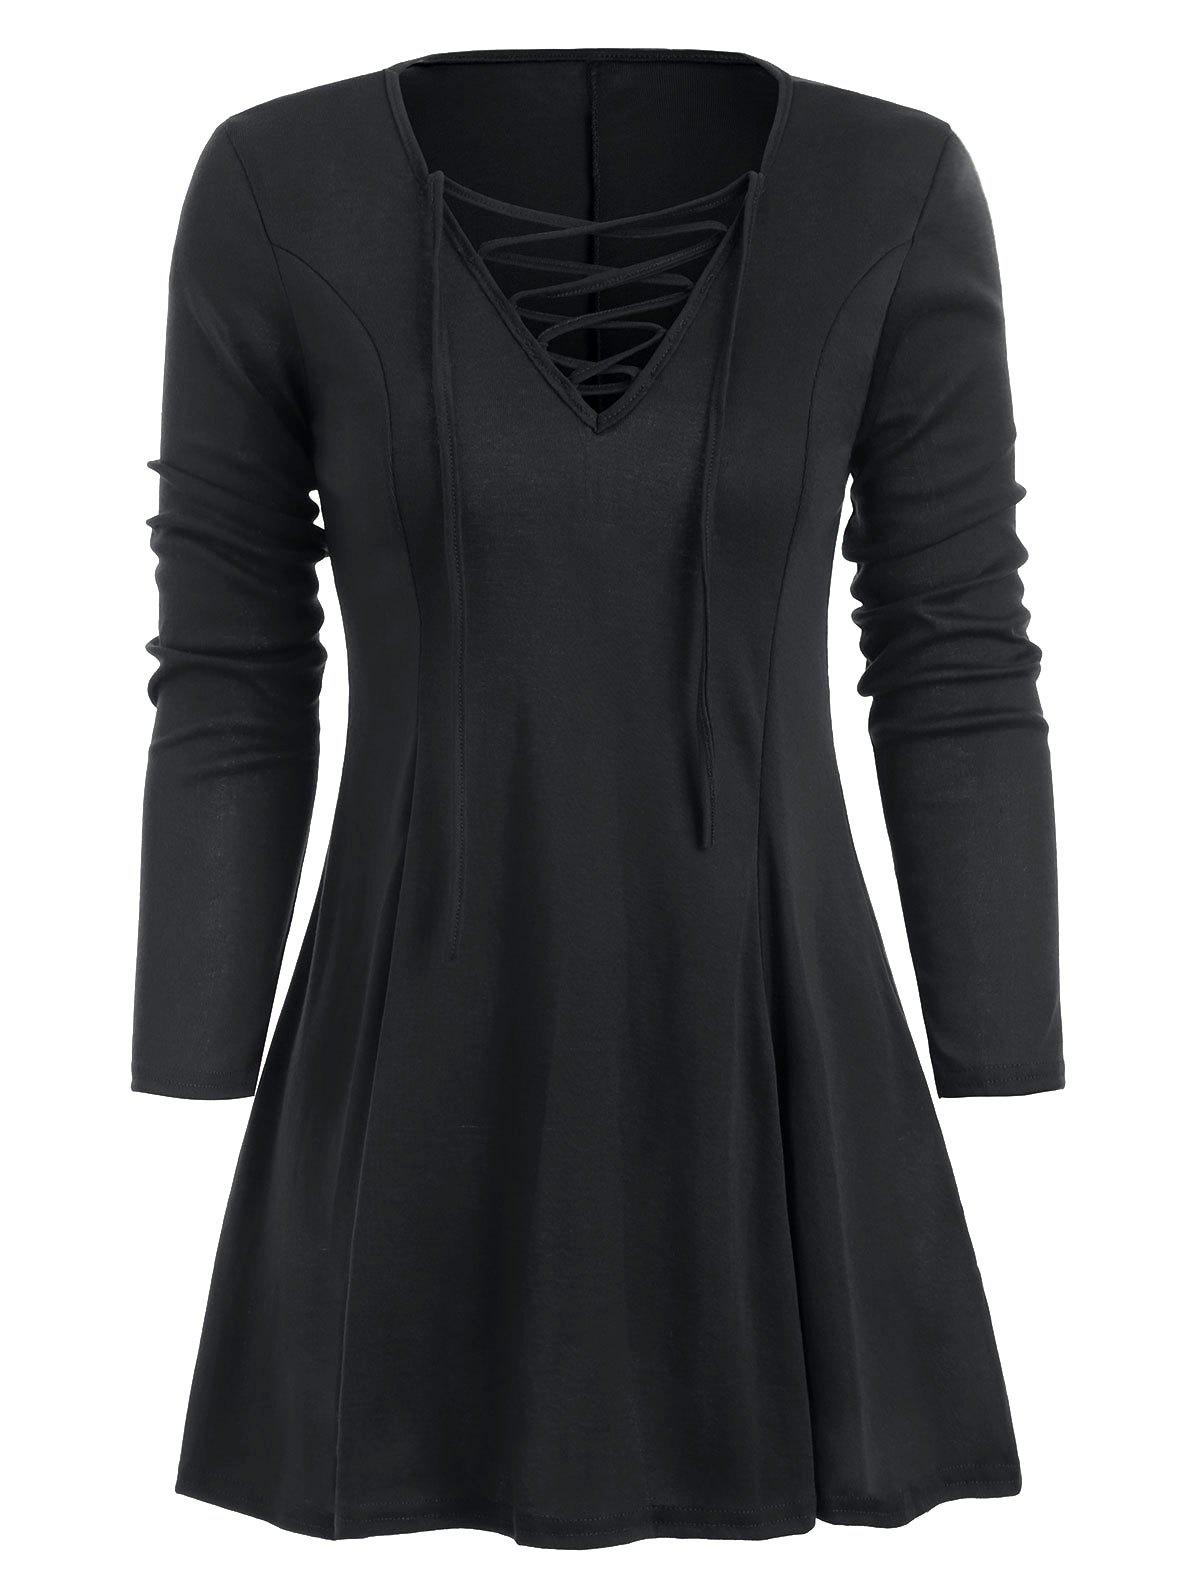 Store Lace Up Long Sleeve Skirted T-shirt